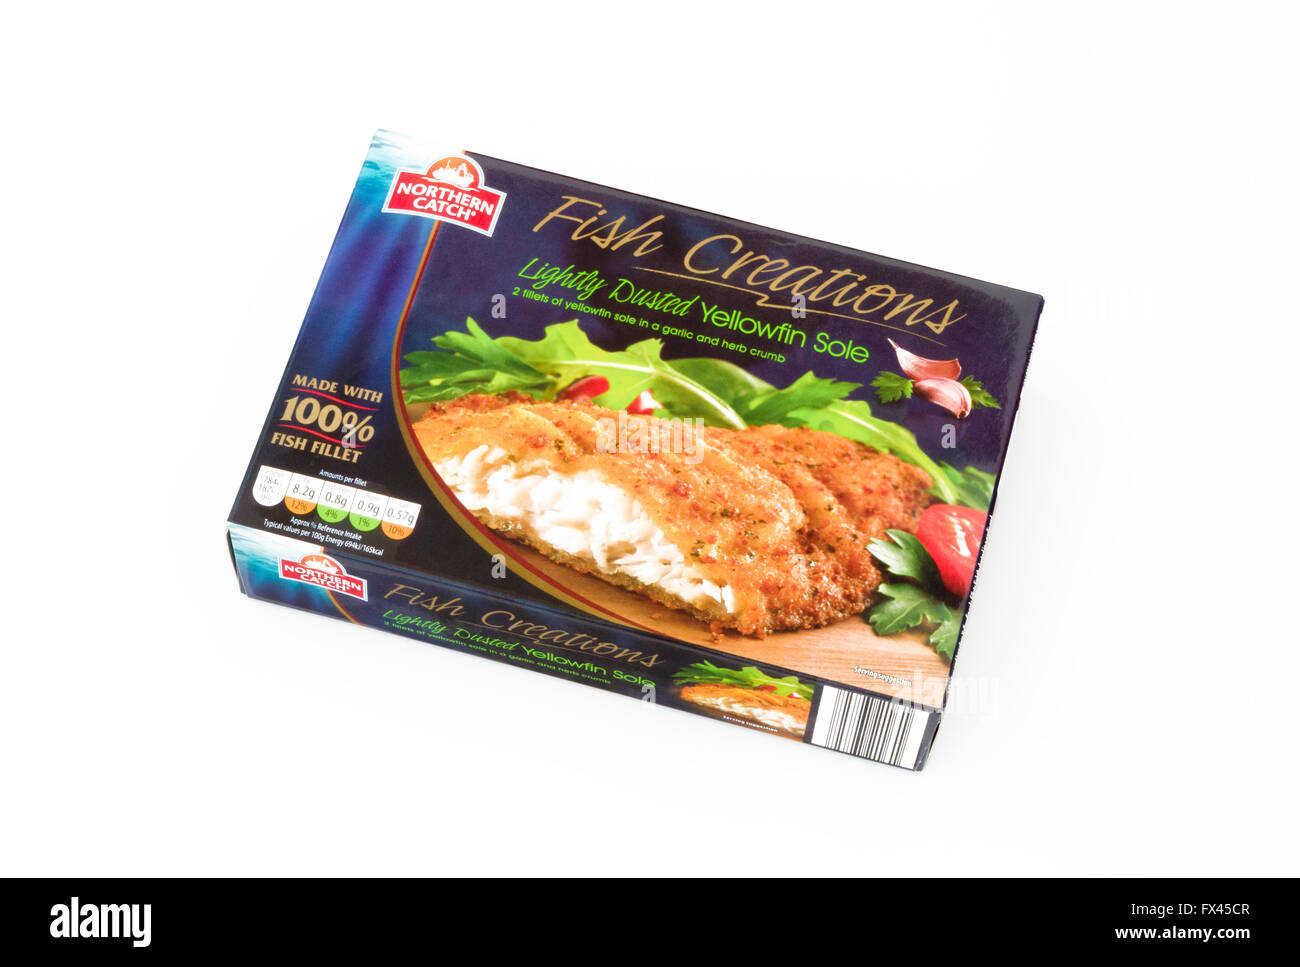 Pack of Frozen Yellowfin Sole Fish Fillets, UK - Stock Image